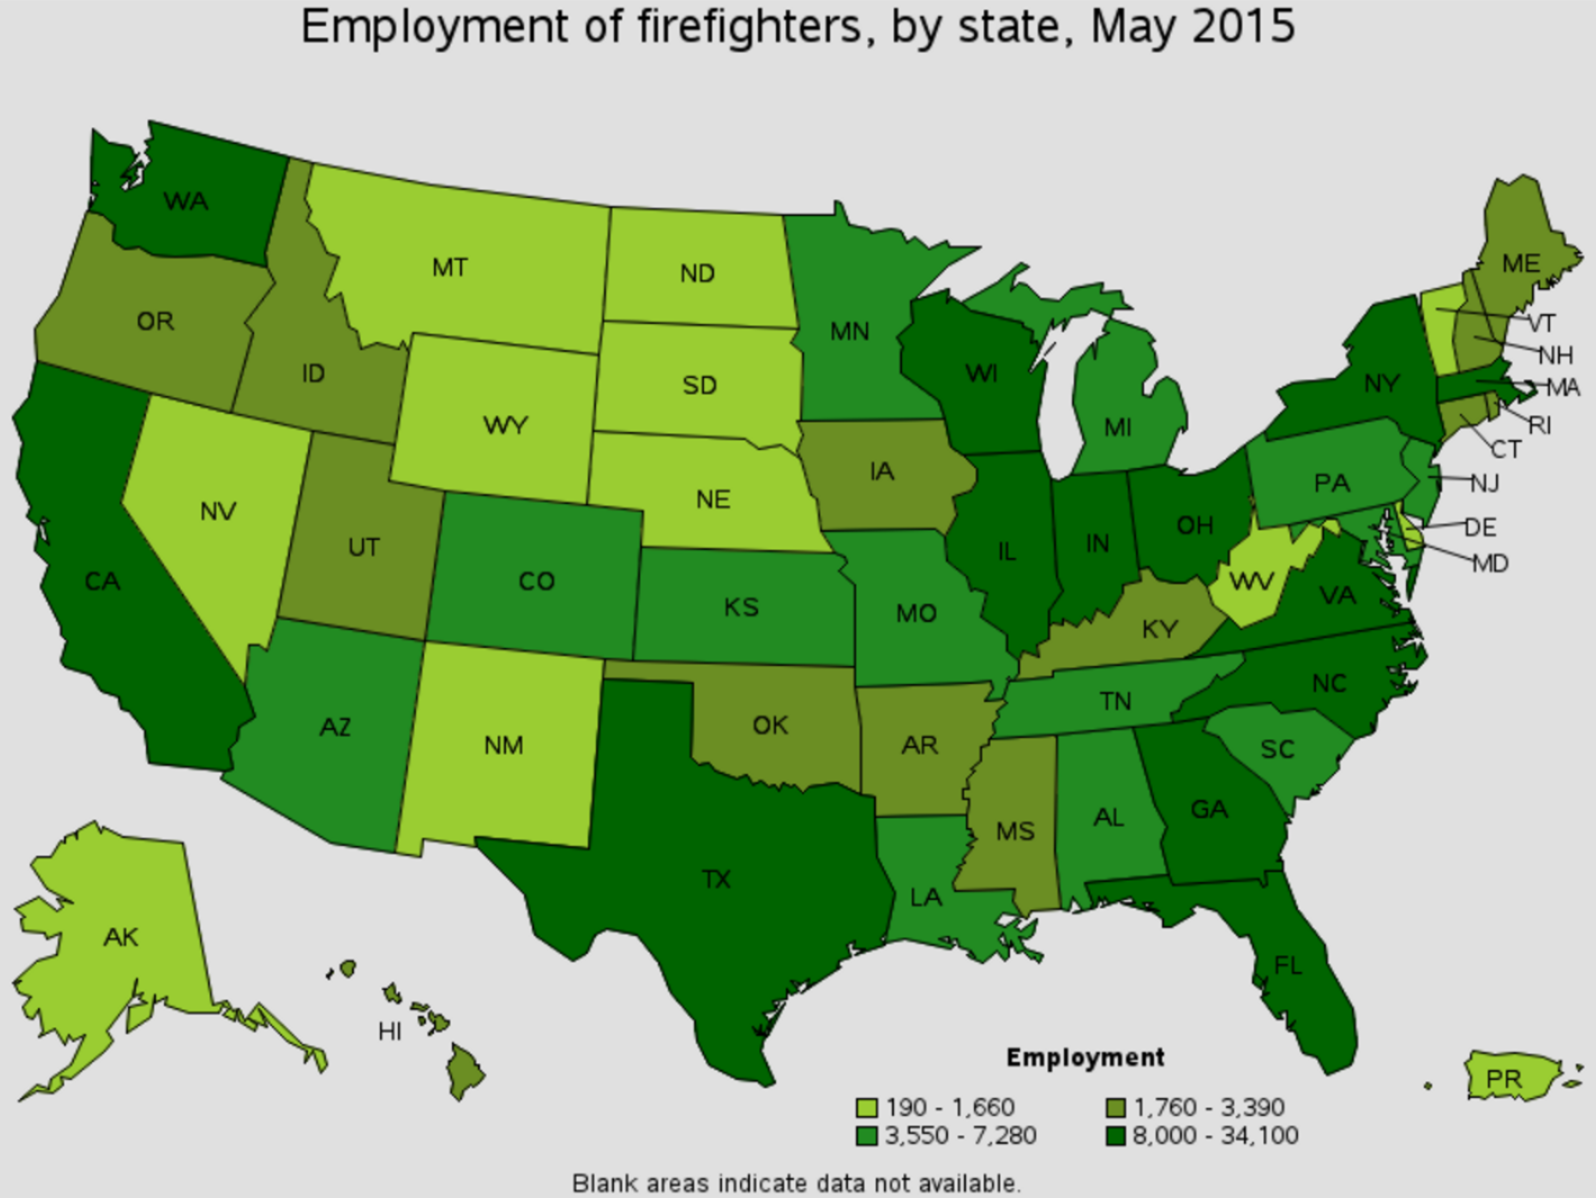 firefighter job outlook by state Everett Washington